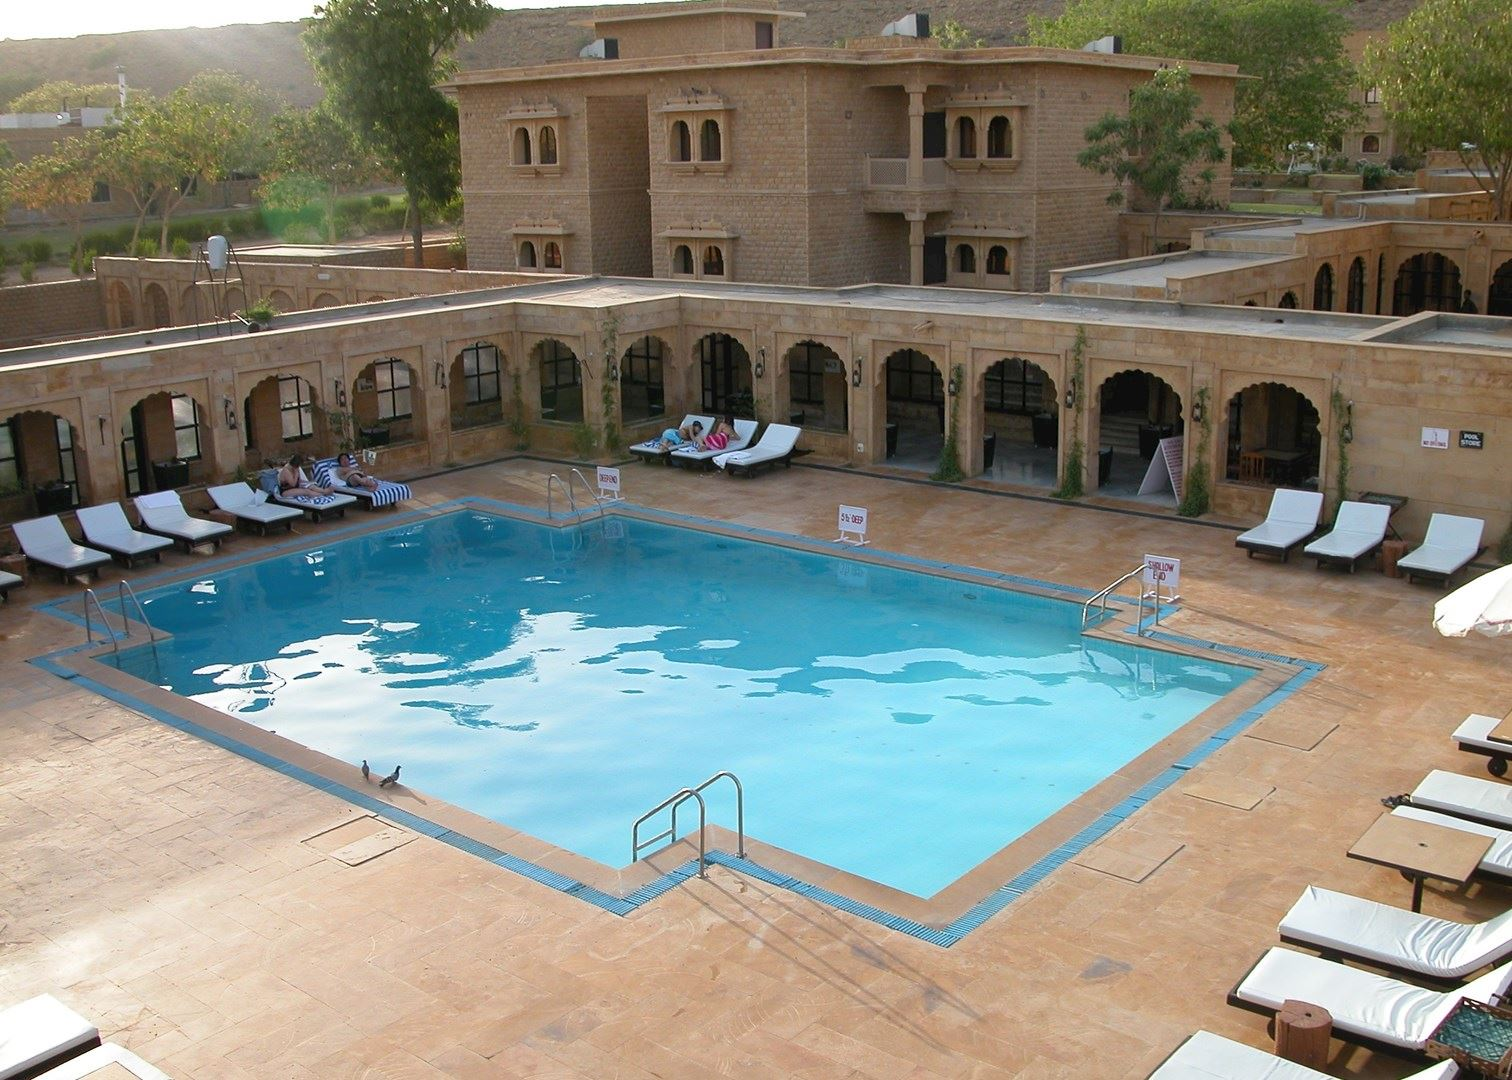 Rawal kot hotels in jaisalmer audley travel - Jaisalmer hotels with swimming pool ...